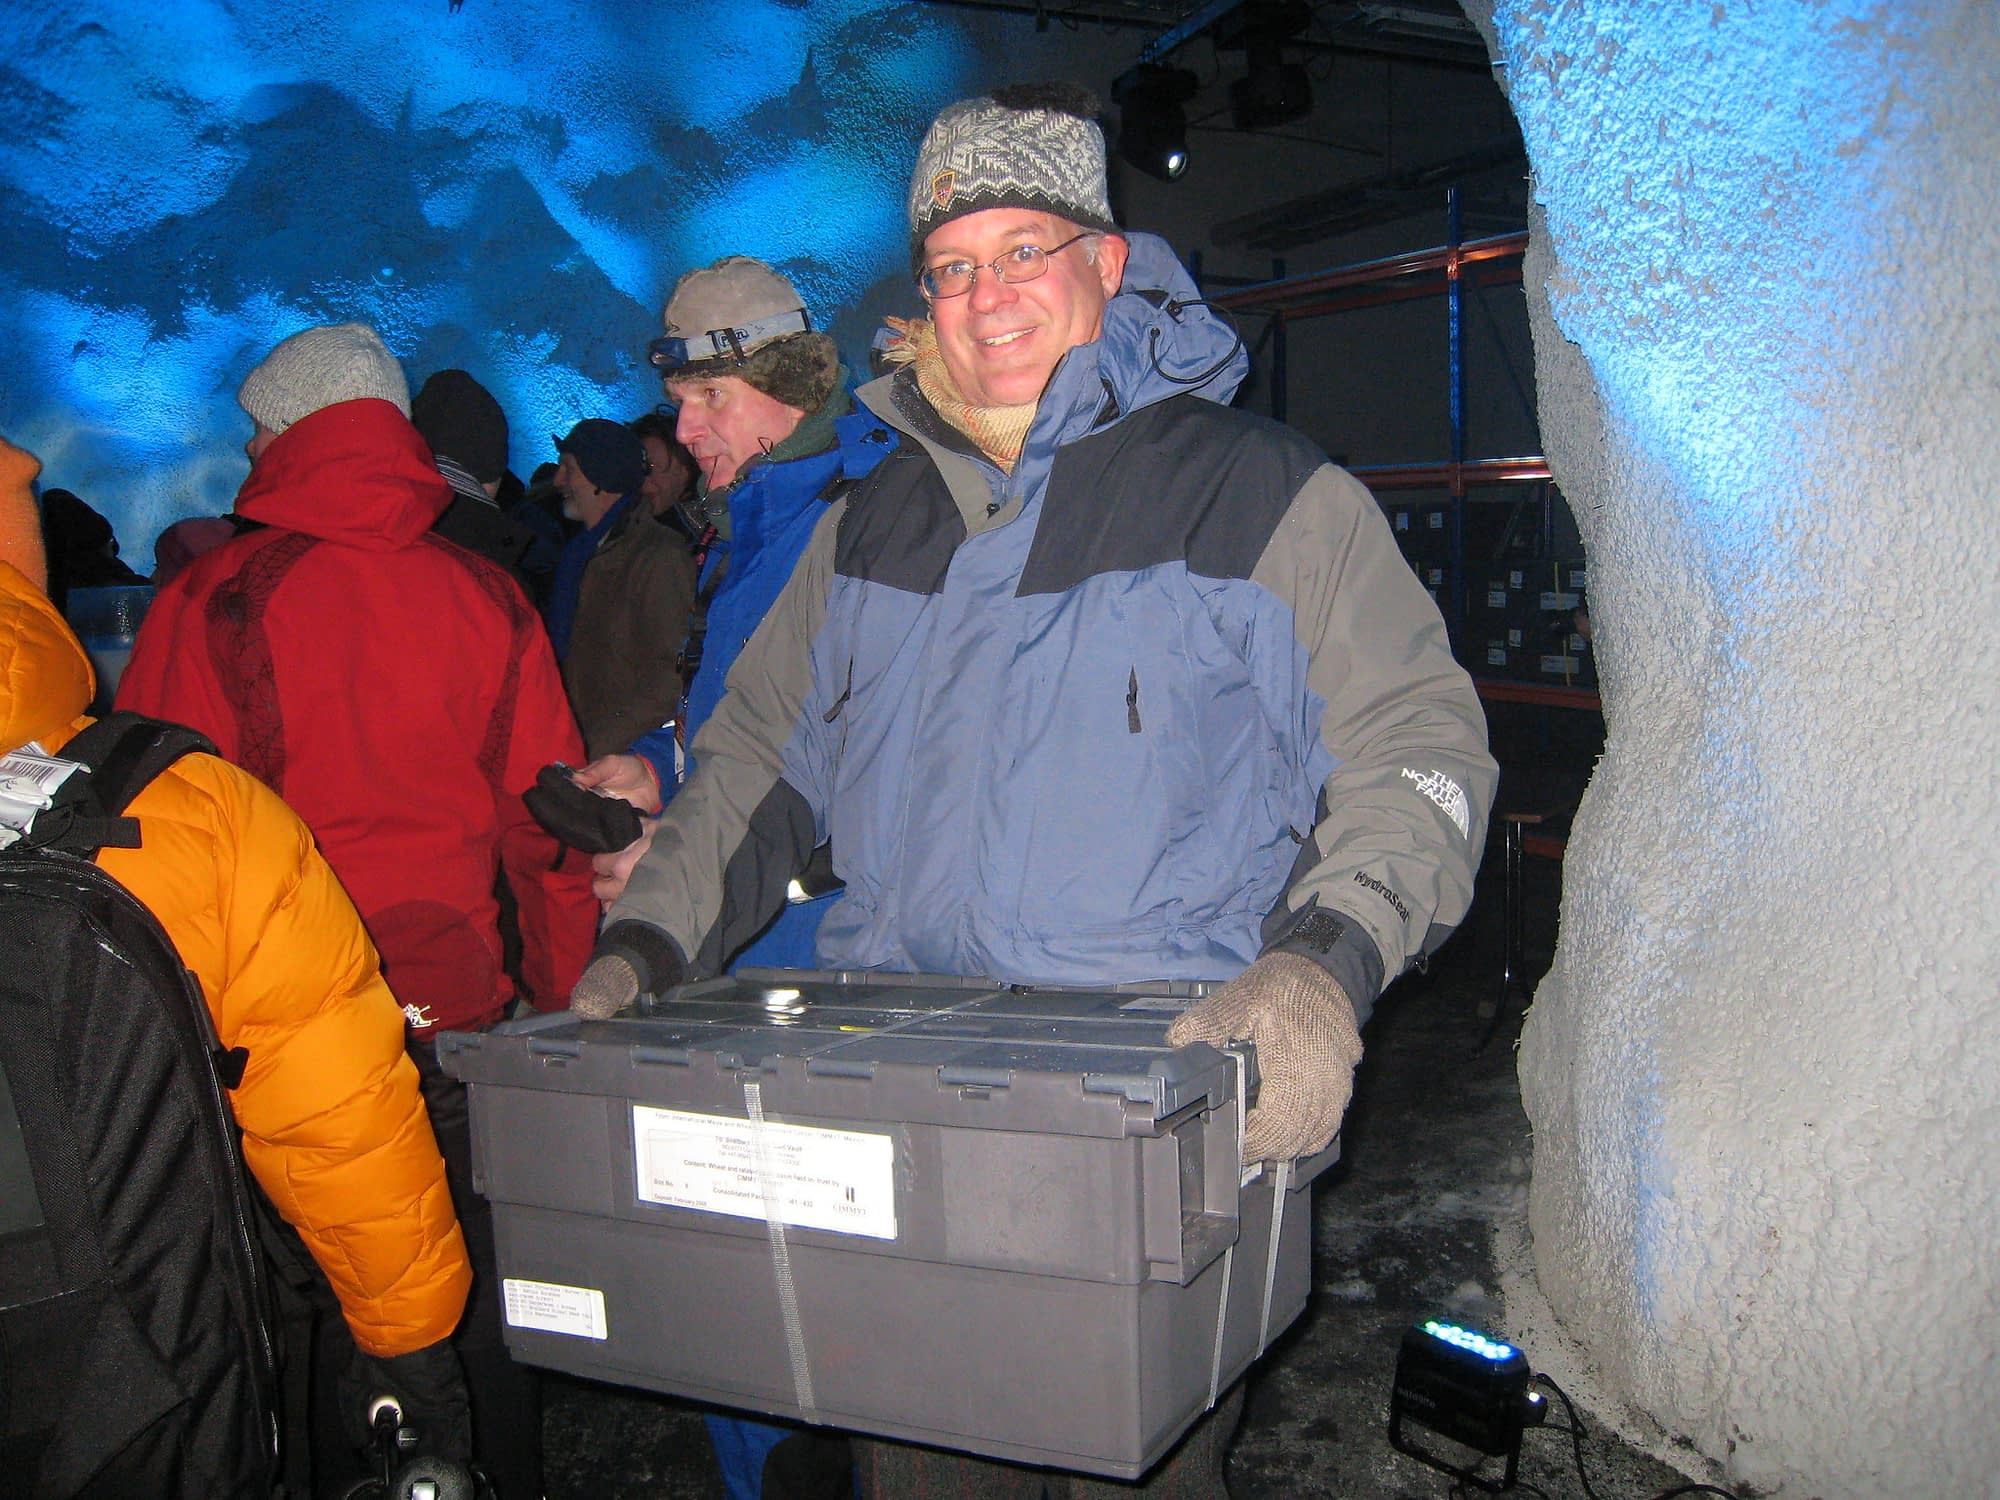 Tom Payne at the Global Seed Vault in Svalbard, Norway, for the official opening ceremony in 2008. He holds one of the sealed boxes used to store the nearly 50,000 unique maize and wheat seed collections deposited by CIMMYT. (Photo: Thomas Lumpkin/CIMMYT)